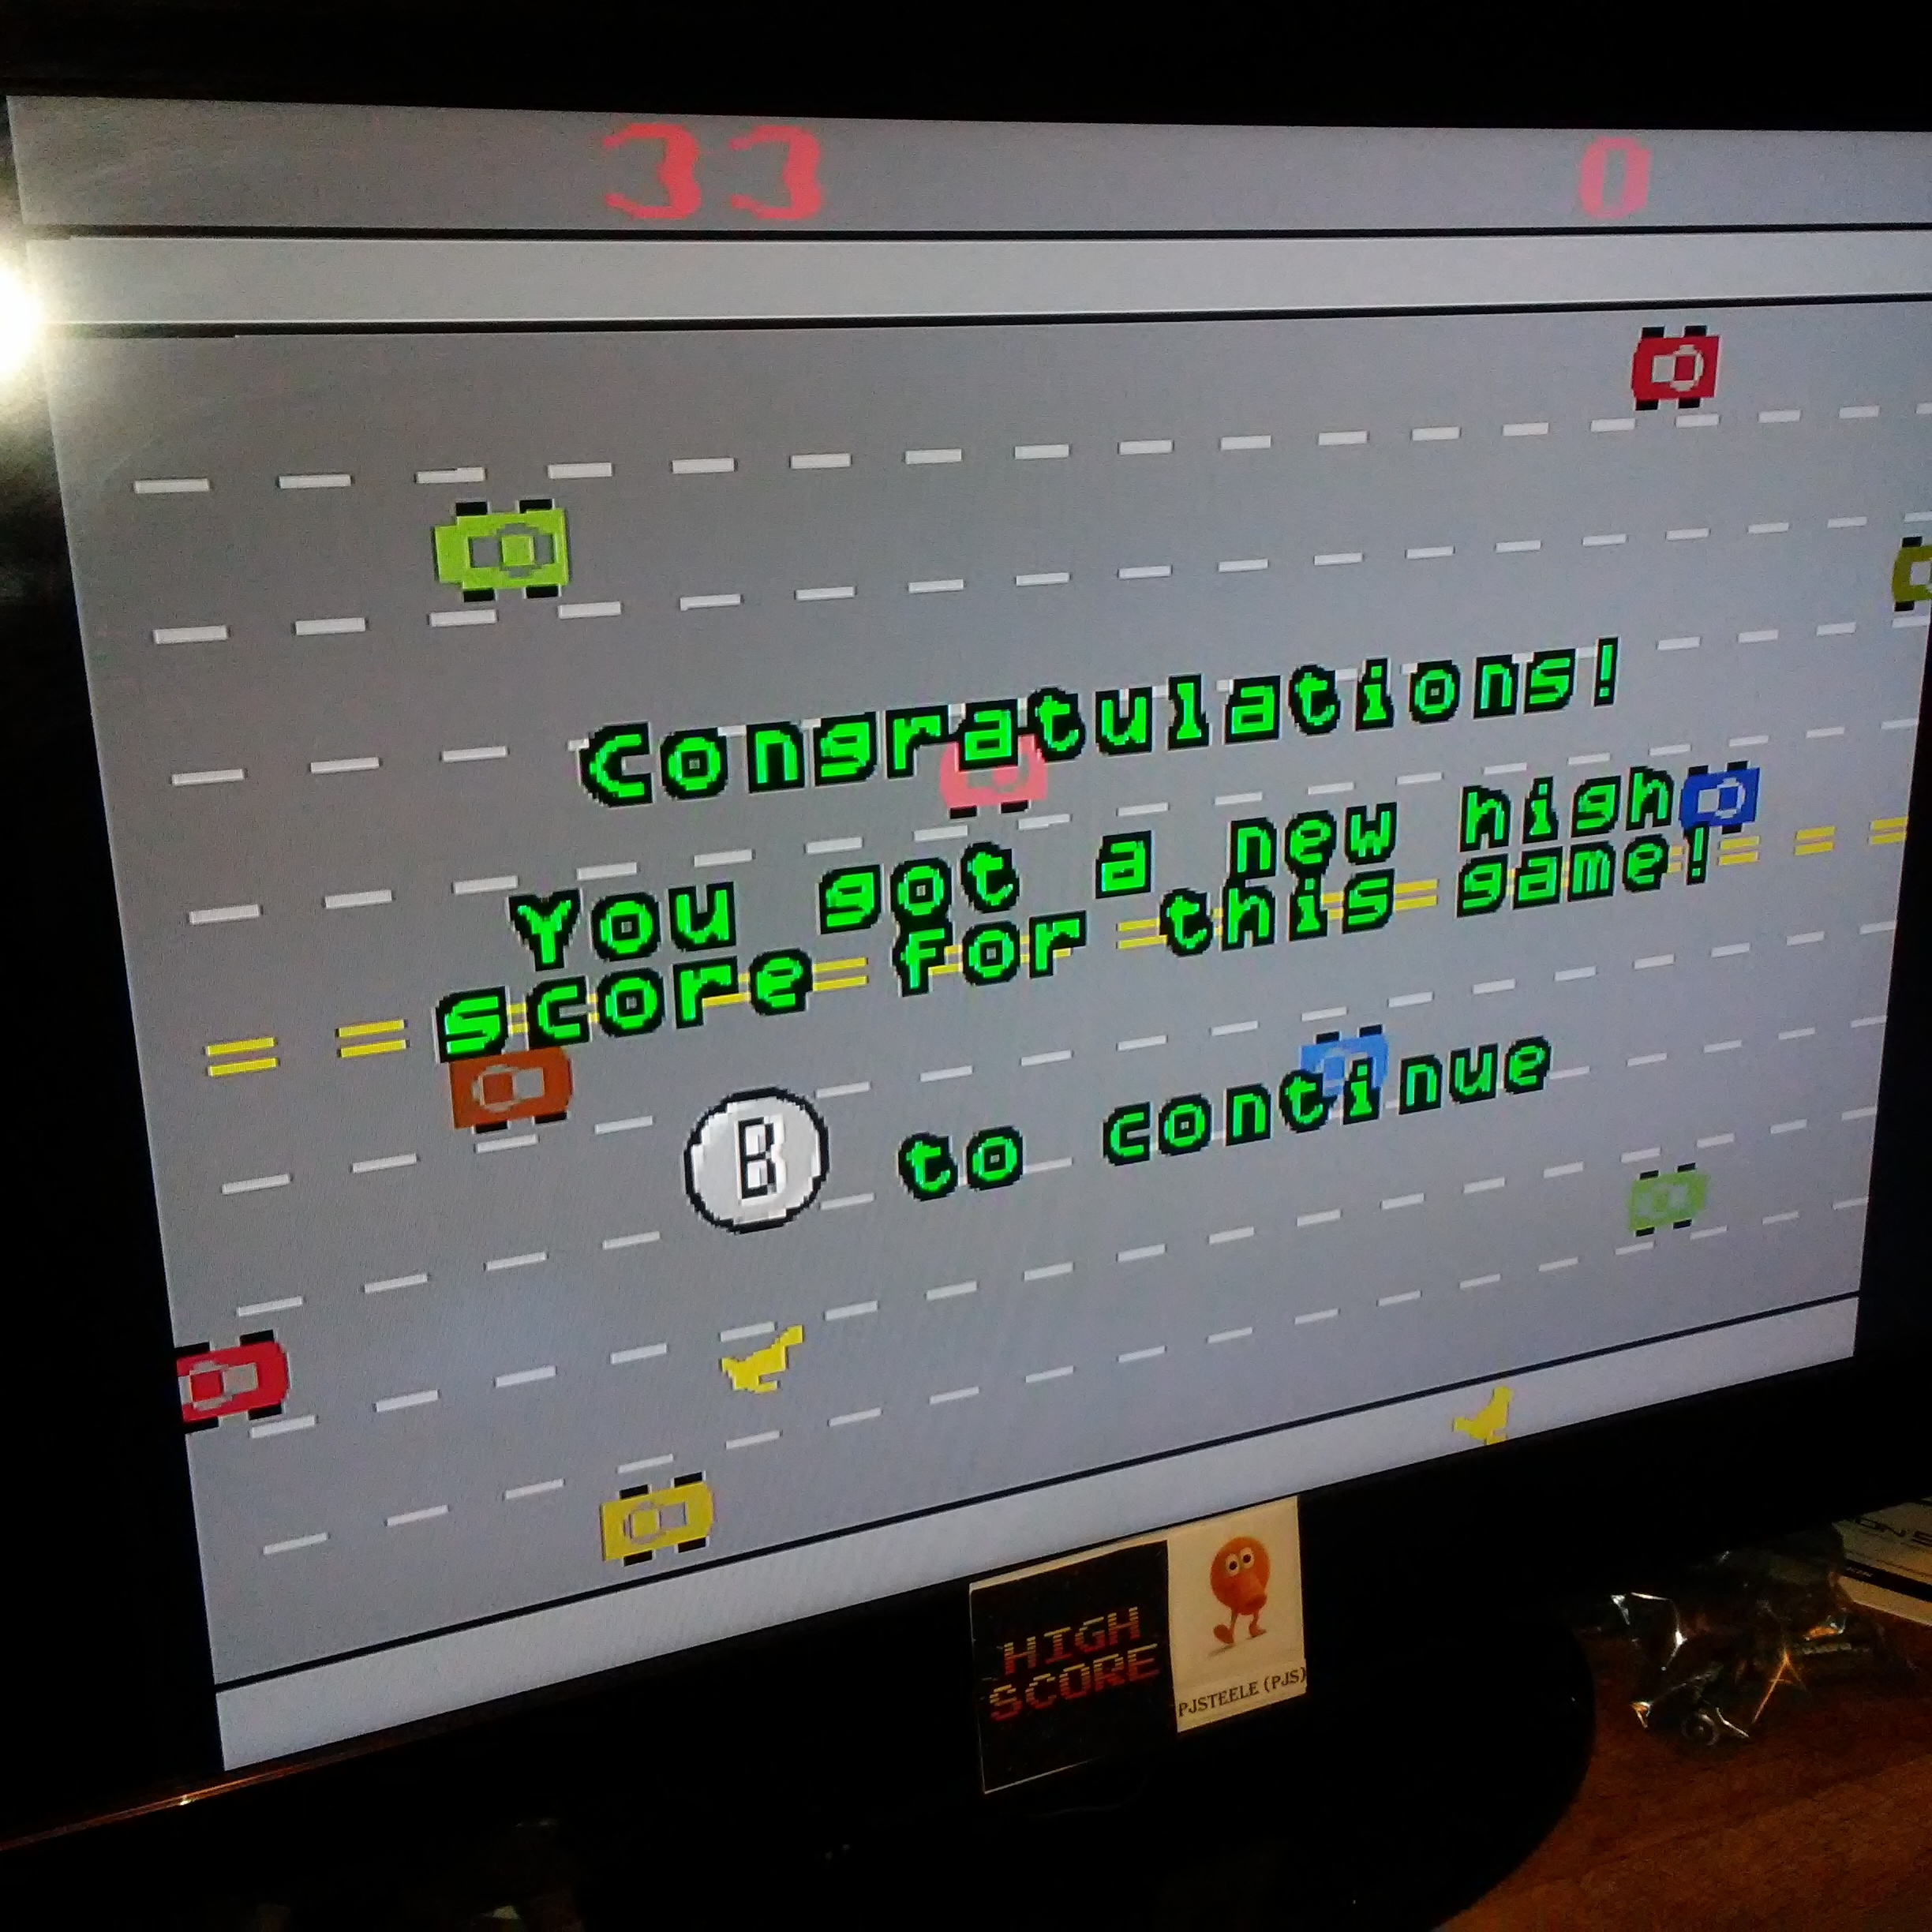 Pjsteele: Activision Anthology: Freeway [Game 1B] (GBA Emulated) 33 points on 2017-04-08 10:01:07